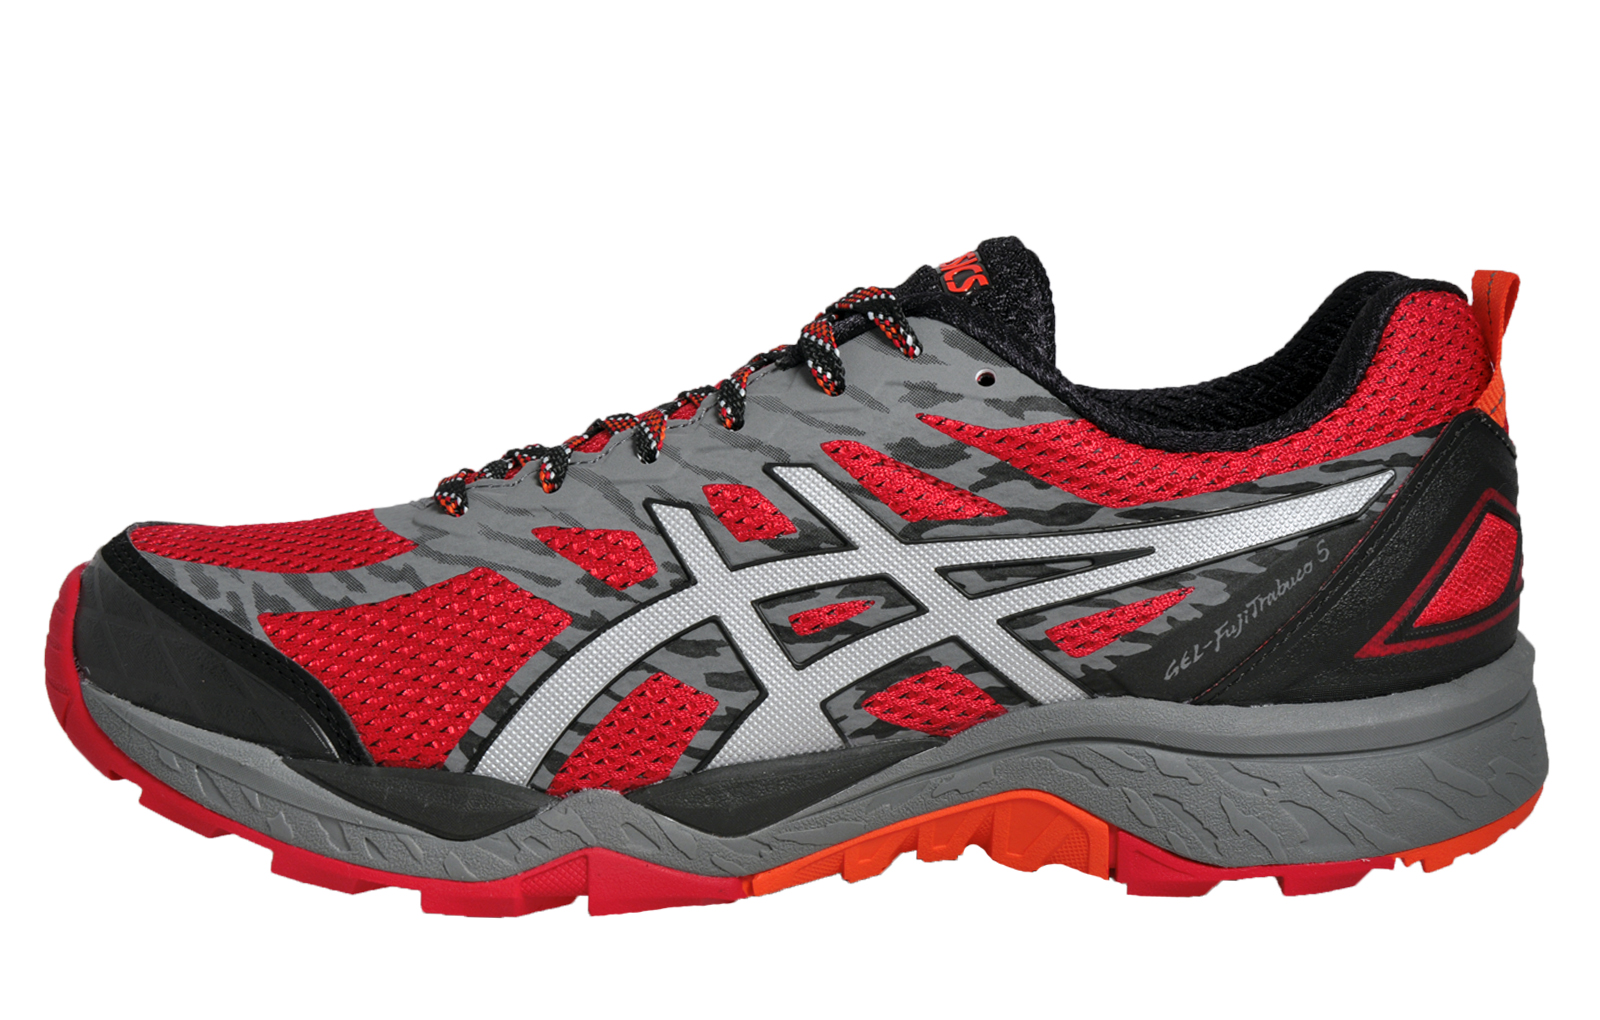 asics gel fuji trabuco 5 mens all terrain premium running shoes trail trainers t. Black Bedroom Furniture Sets. Home Design Ideas